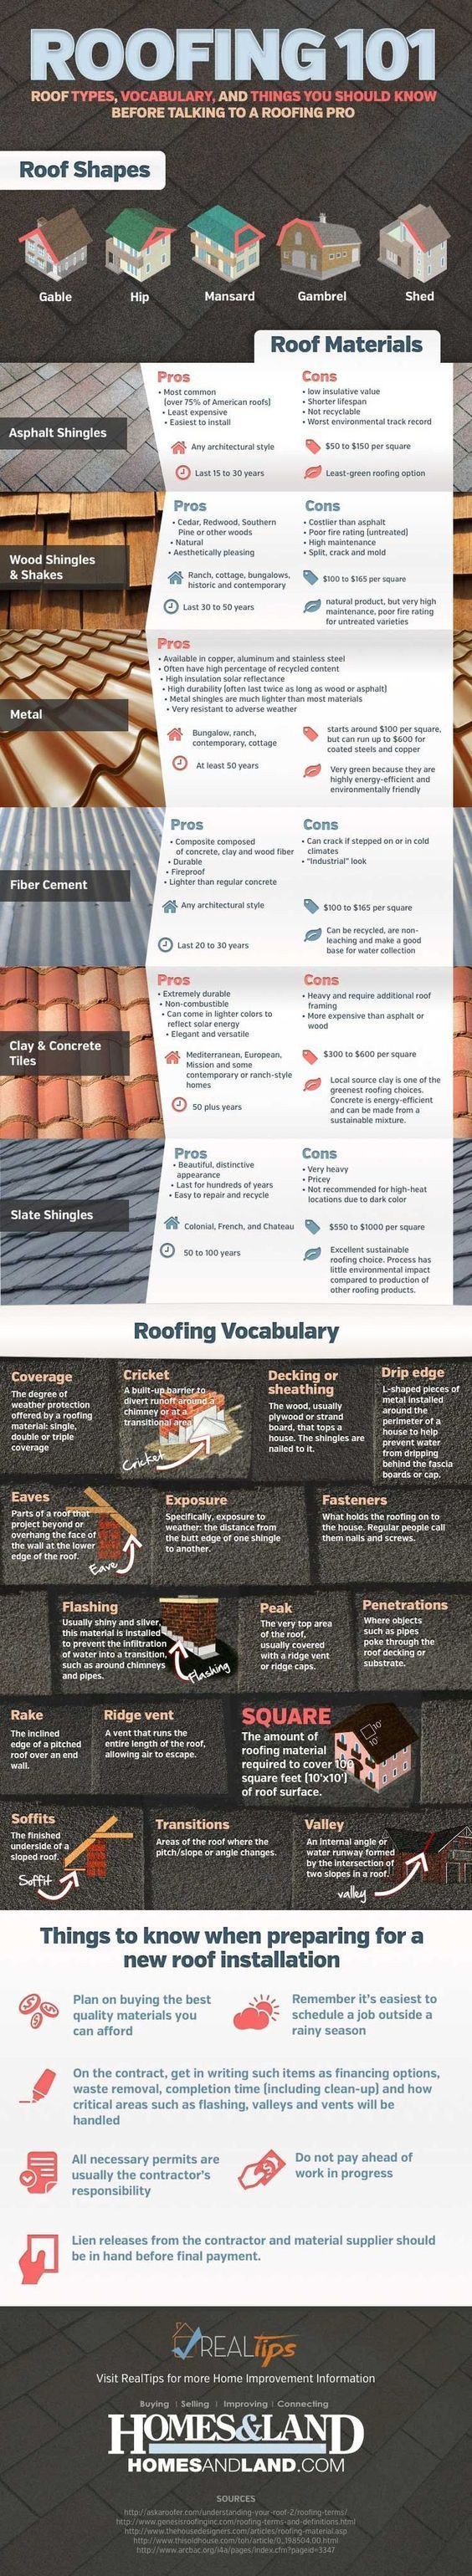 Image 15 Of 28 From Gallery Of 26 Handy Architecture Cheat Sheets A Href Https Www Pinterest Com Pin 116319602857833230 H Building A House Roof Roofing